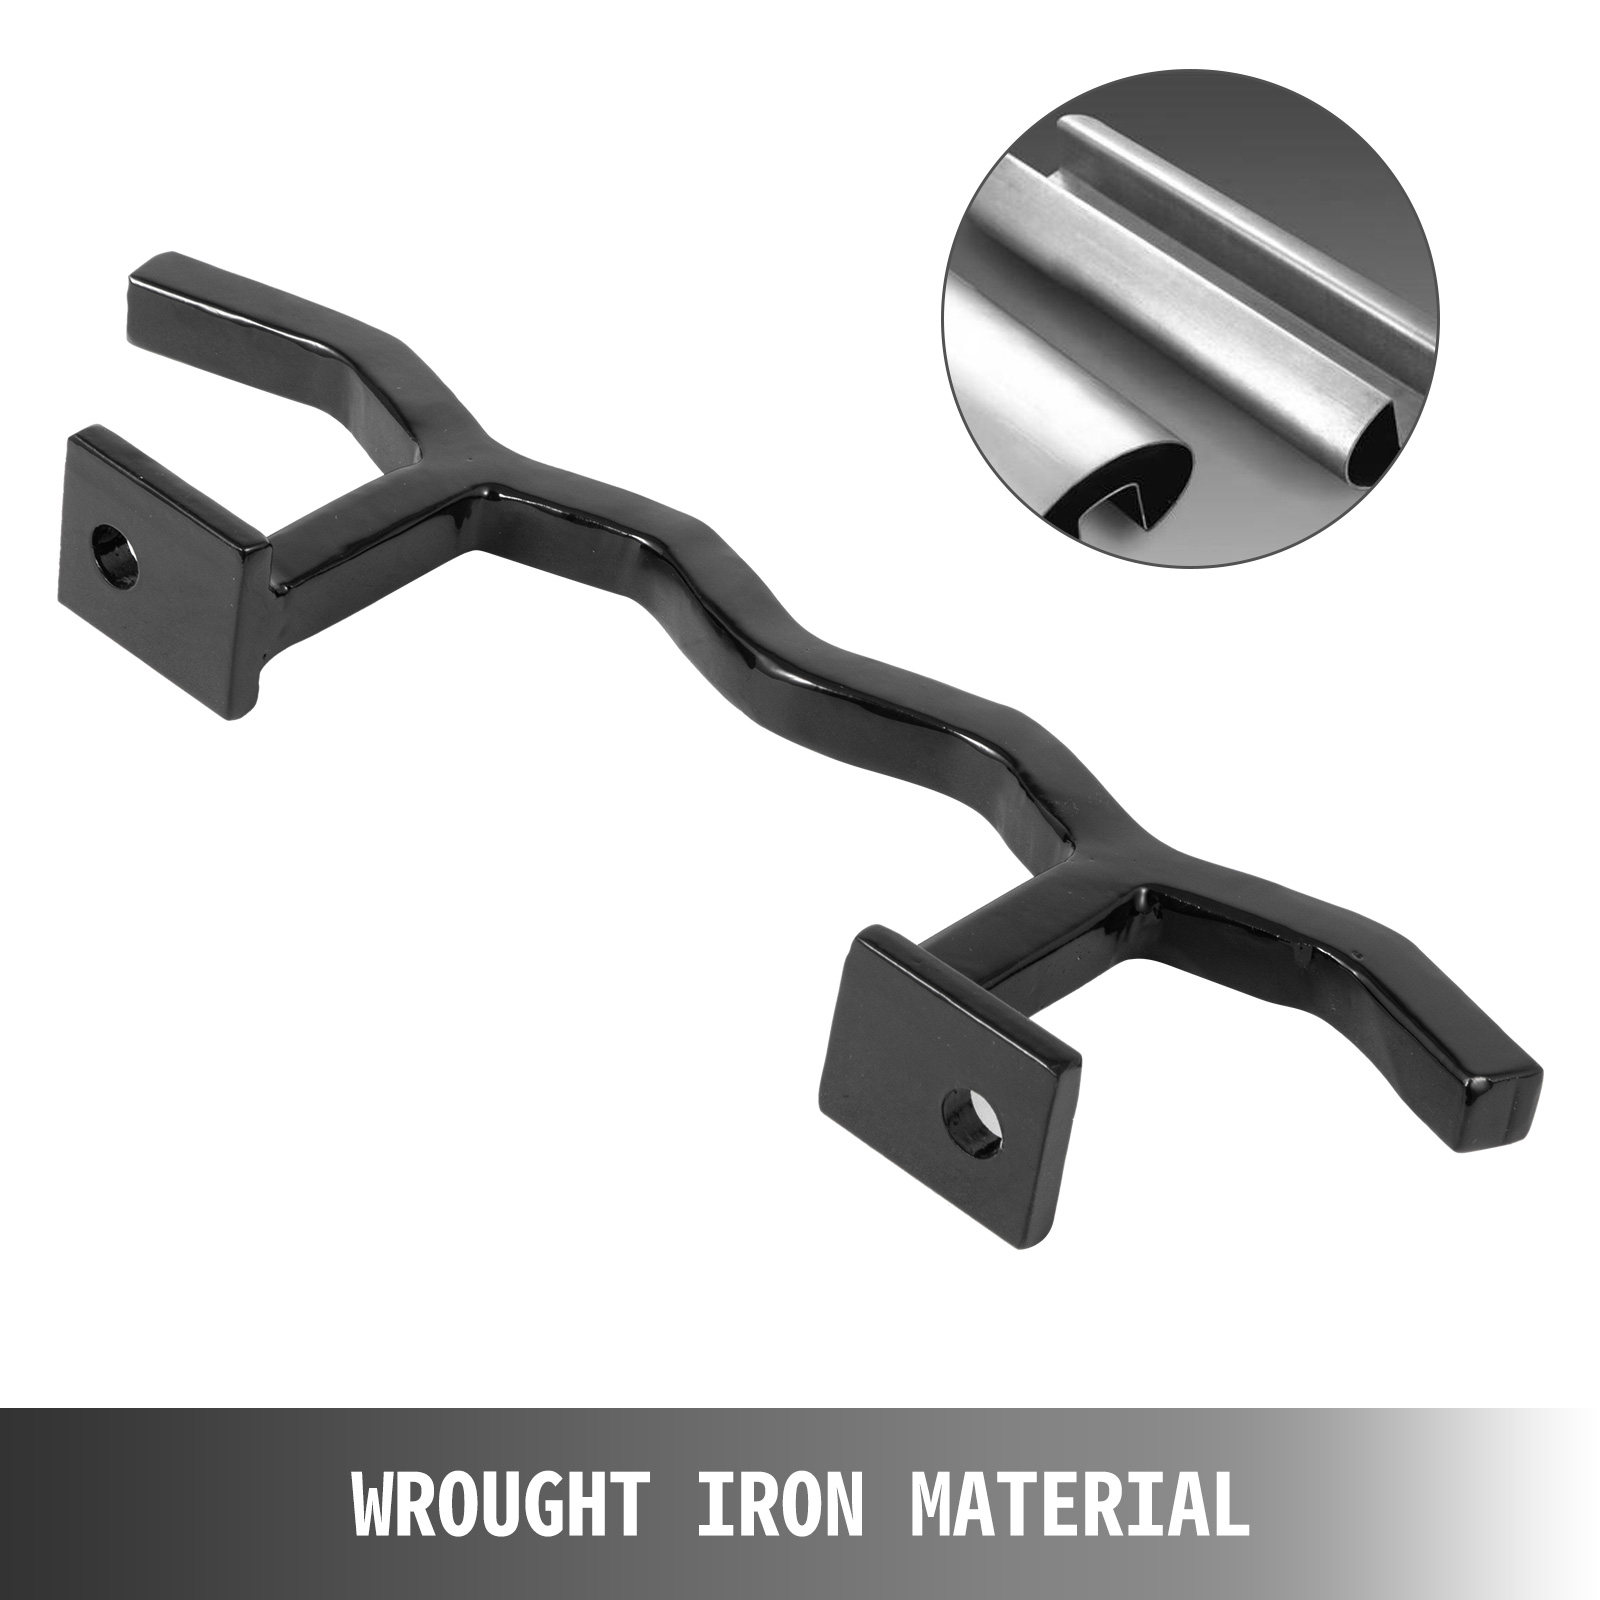 Handrails-for-Outdoor-Step-Wrought-Iron-Handrail-20-034-Length-Porch-Deck-Railing thumbnail 14